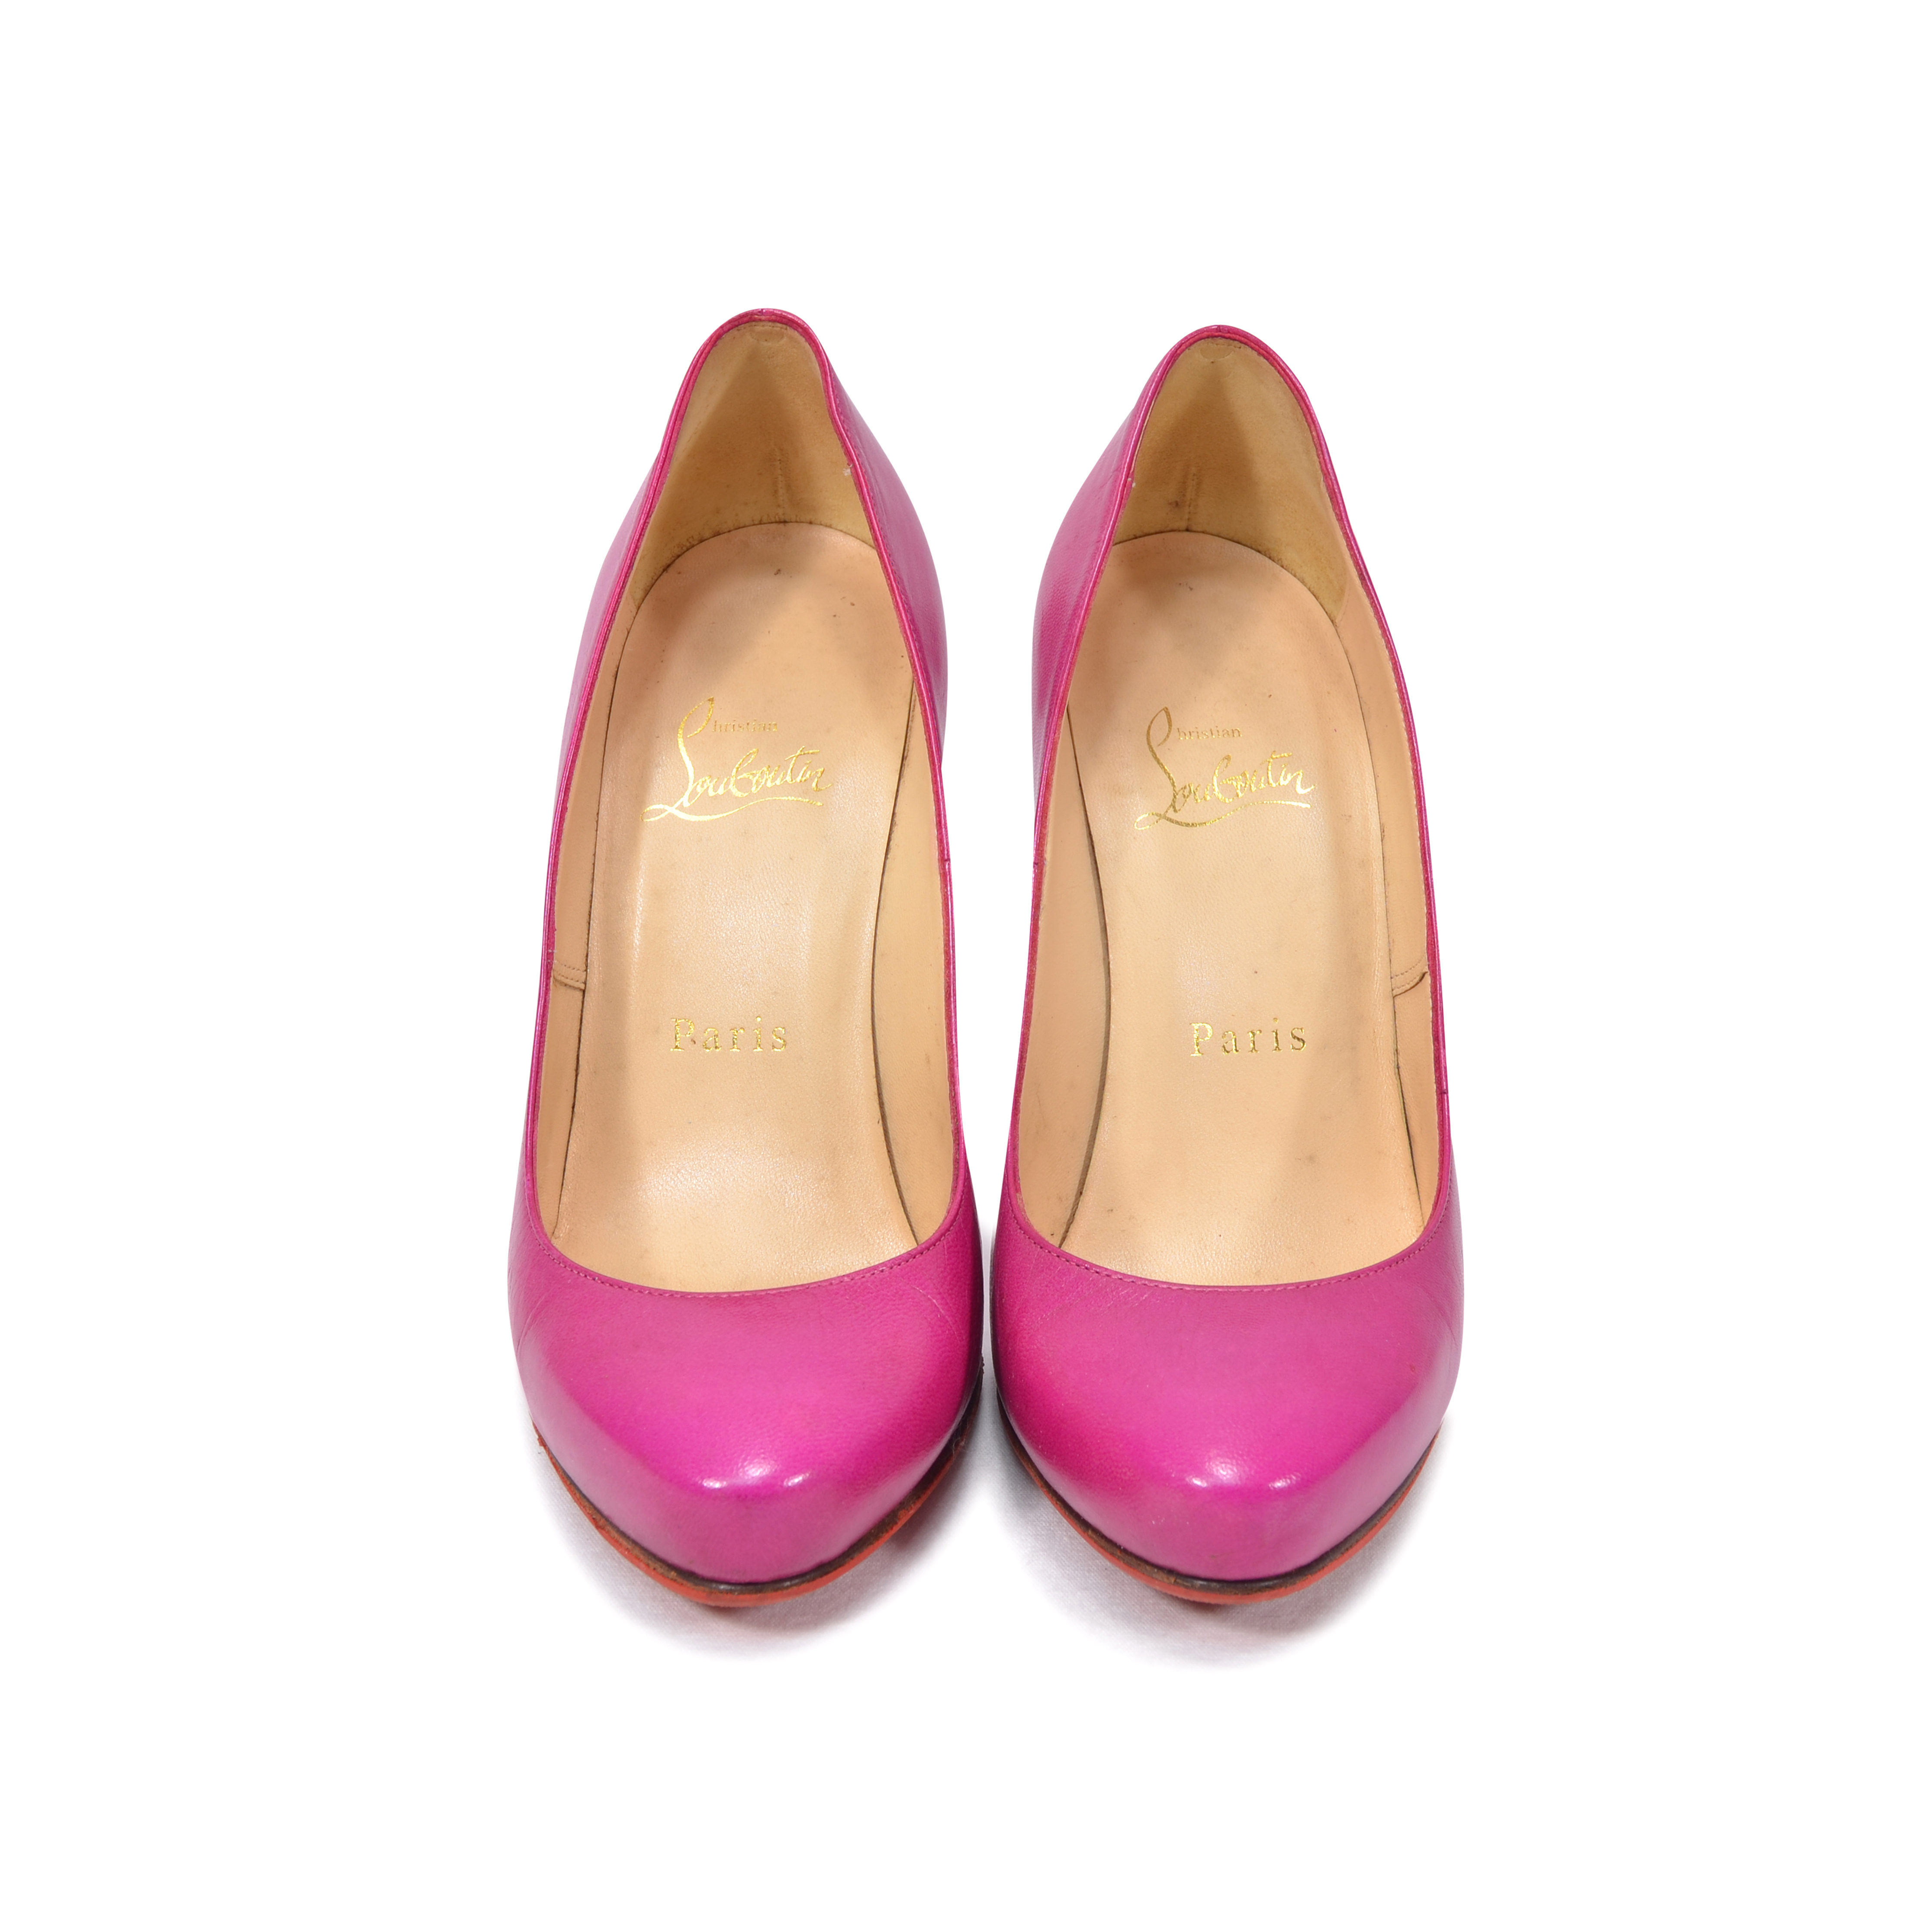 344b410815a where to buy christian louboutin flat dolly hand 470e1 af17f